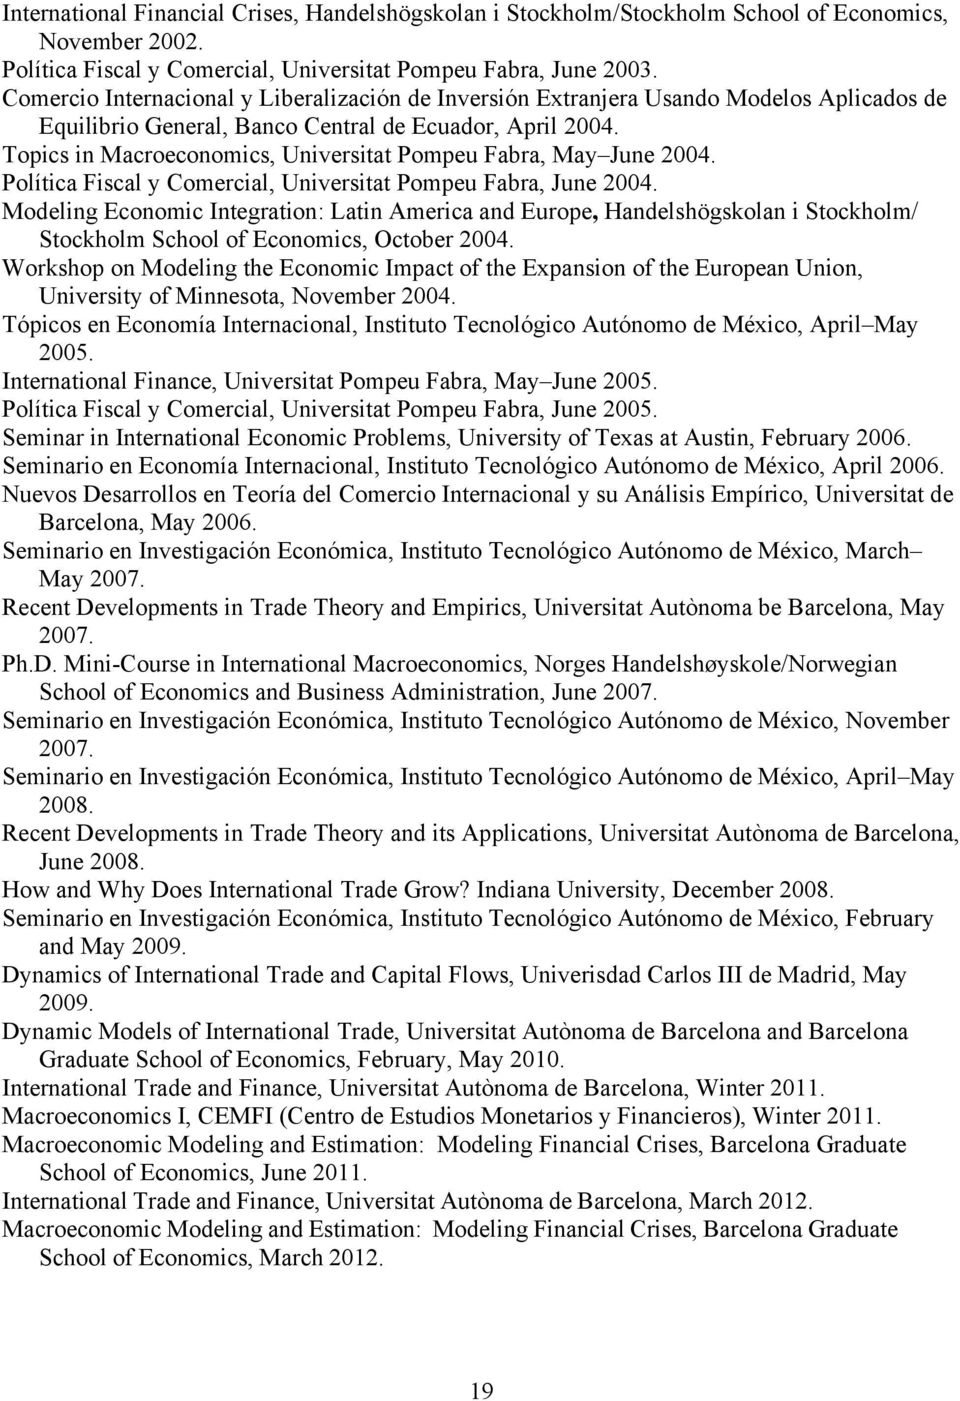 Topics in Macroeconomics, Universitat Pompeu Fabra, May June 2004. Política Fiscal y Comercial, Universitat Pompeu Fabra, June 2004.